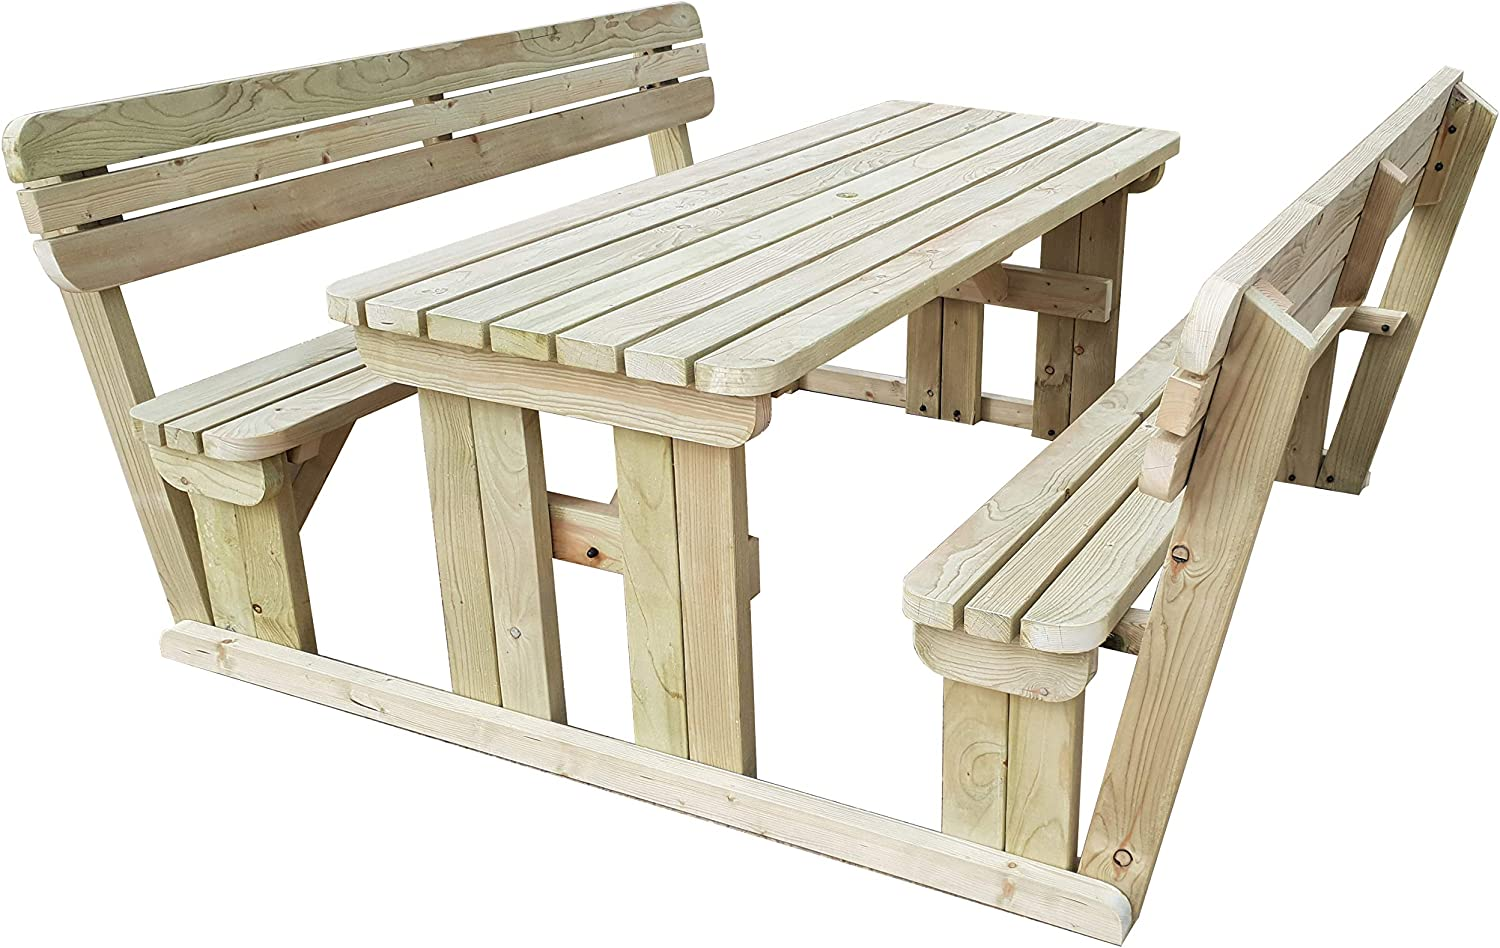 Handmade Outdoor Furniture From Wood 4FT to 8FT ABIES Picnic Table Bench